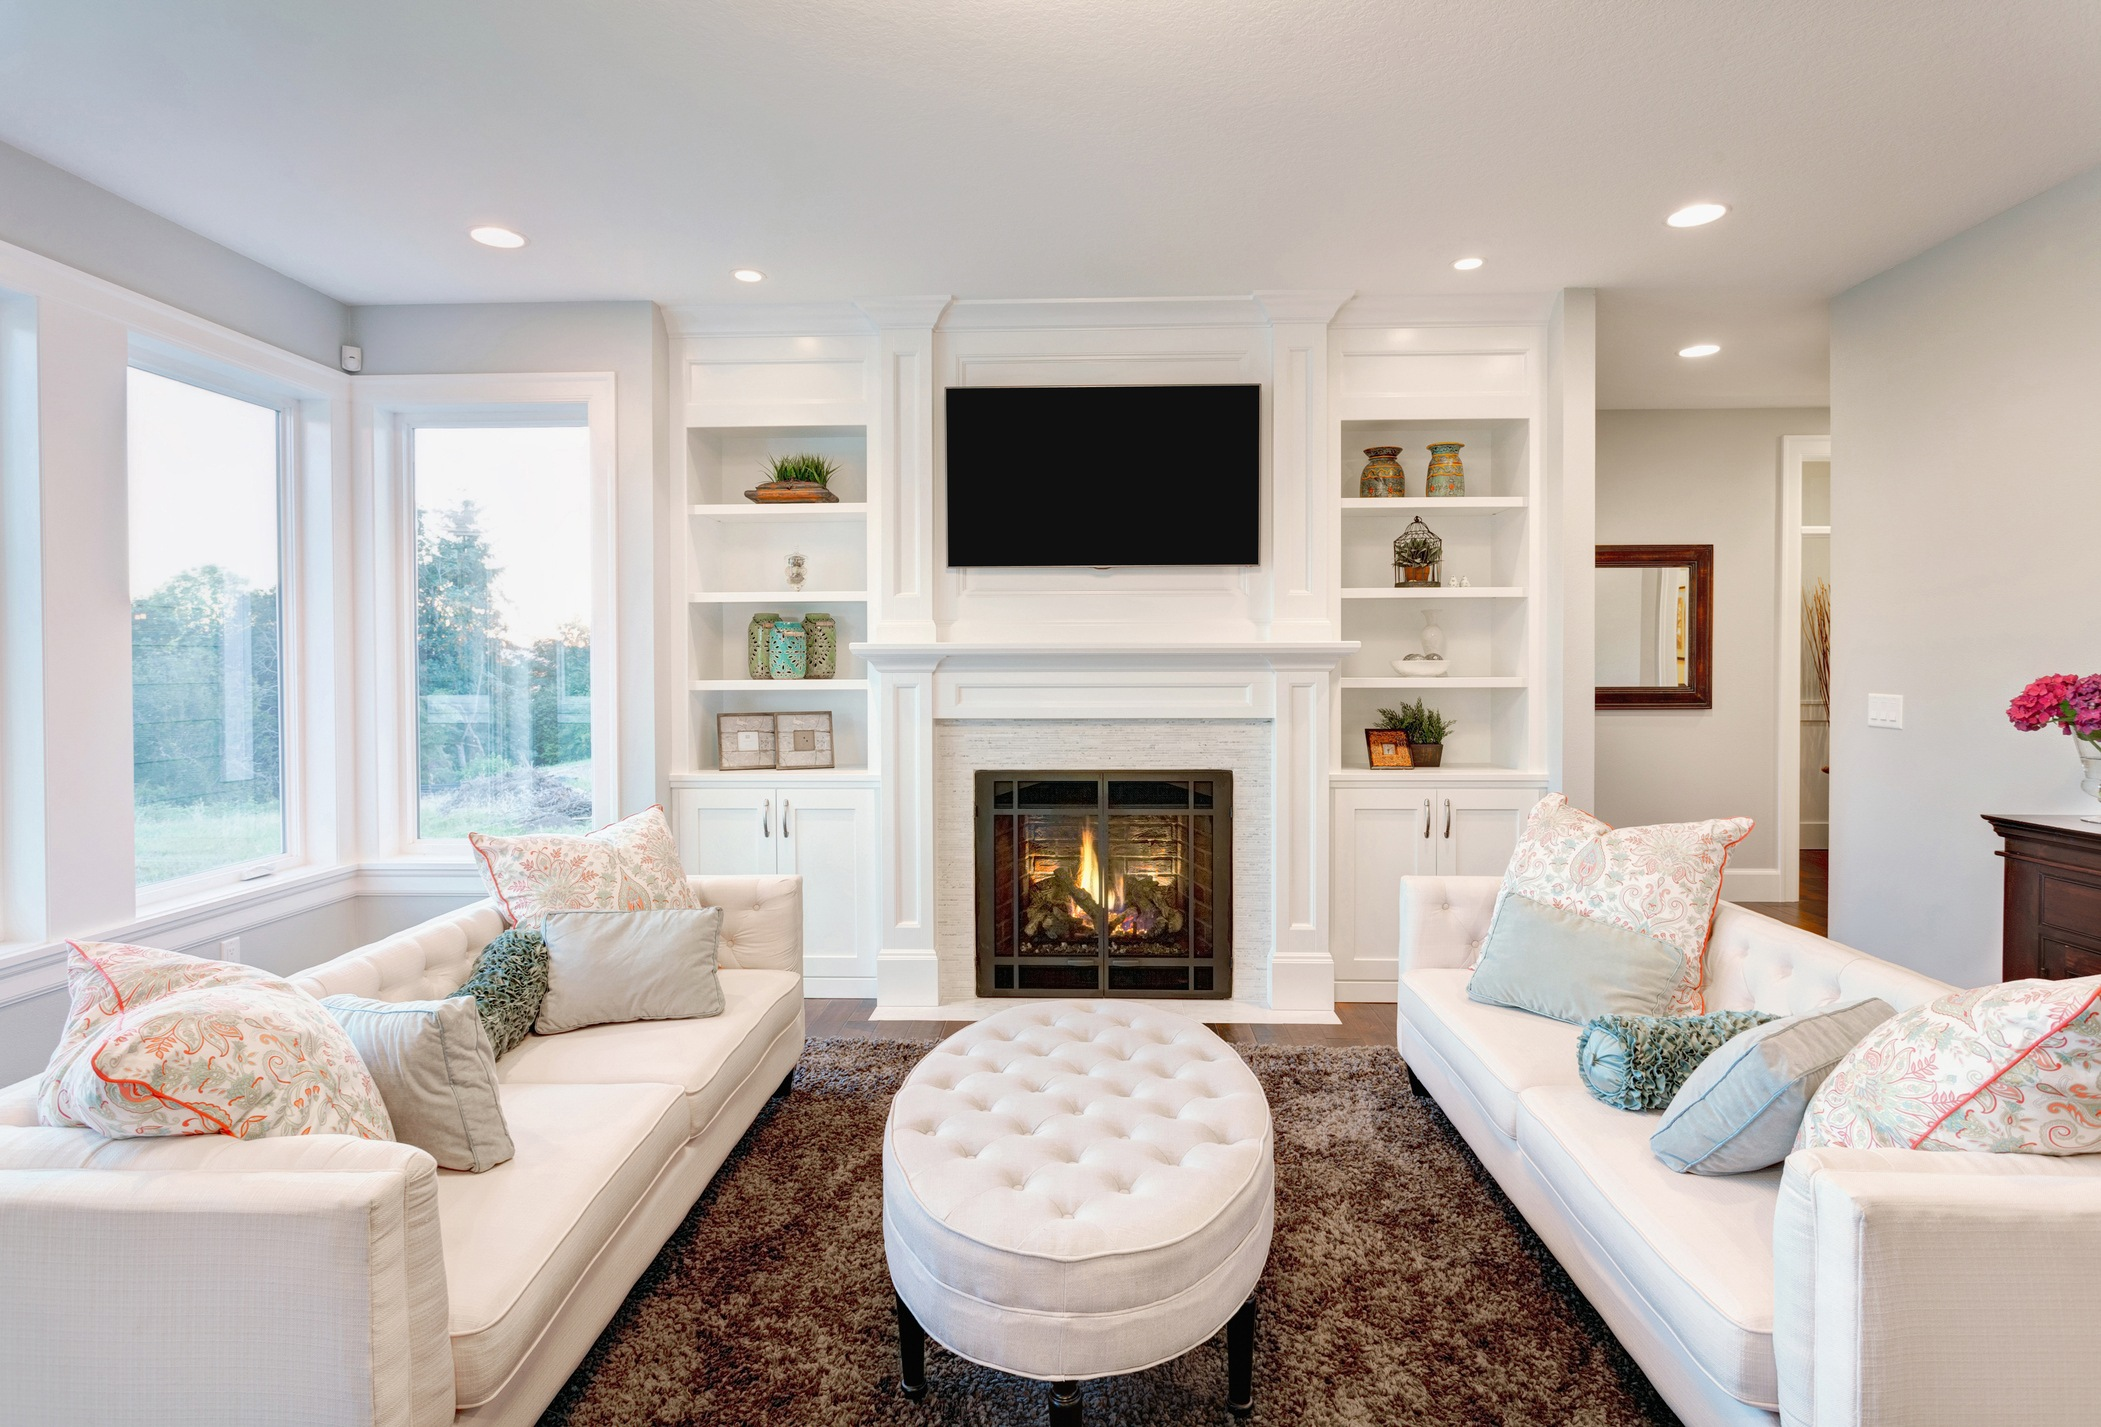 This Popular Living Room Trend May Be Your Worst Design Mistake Ever